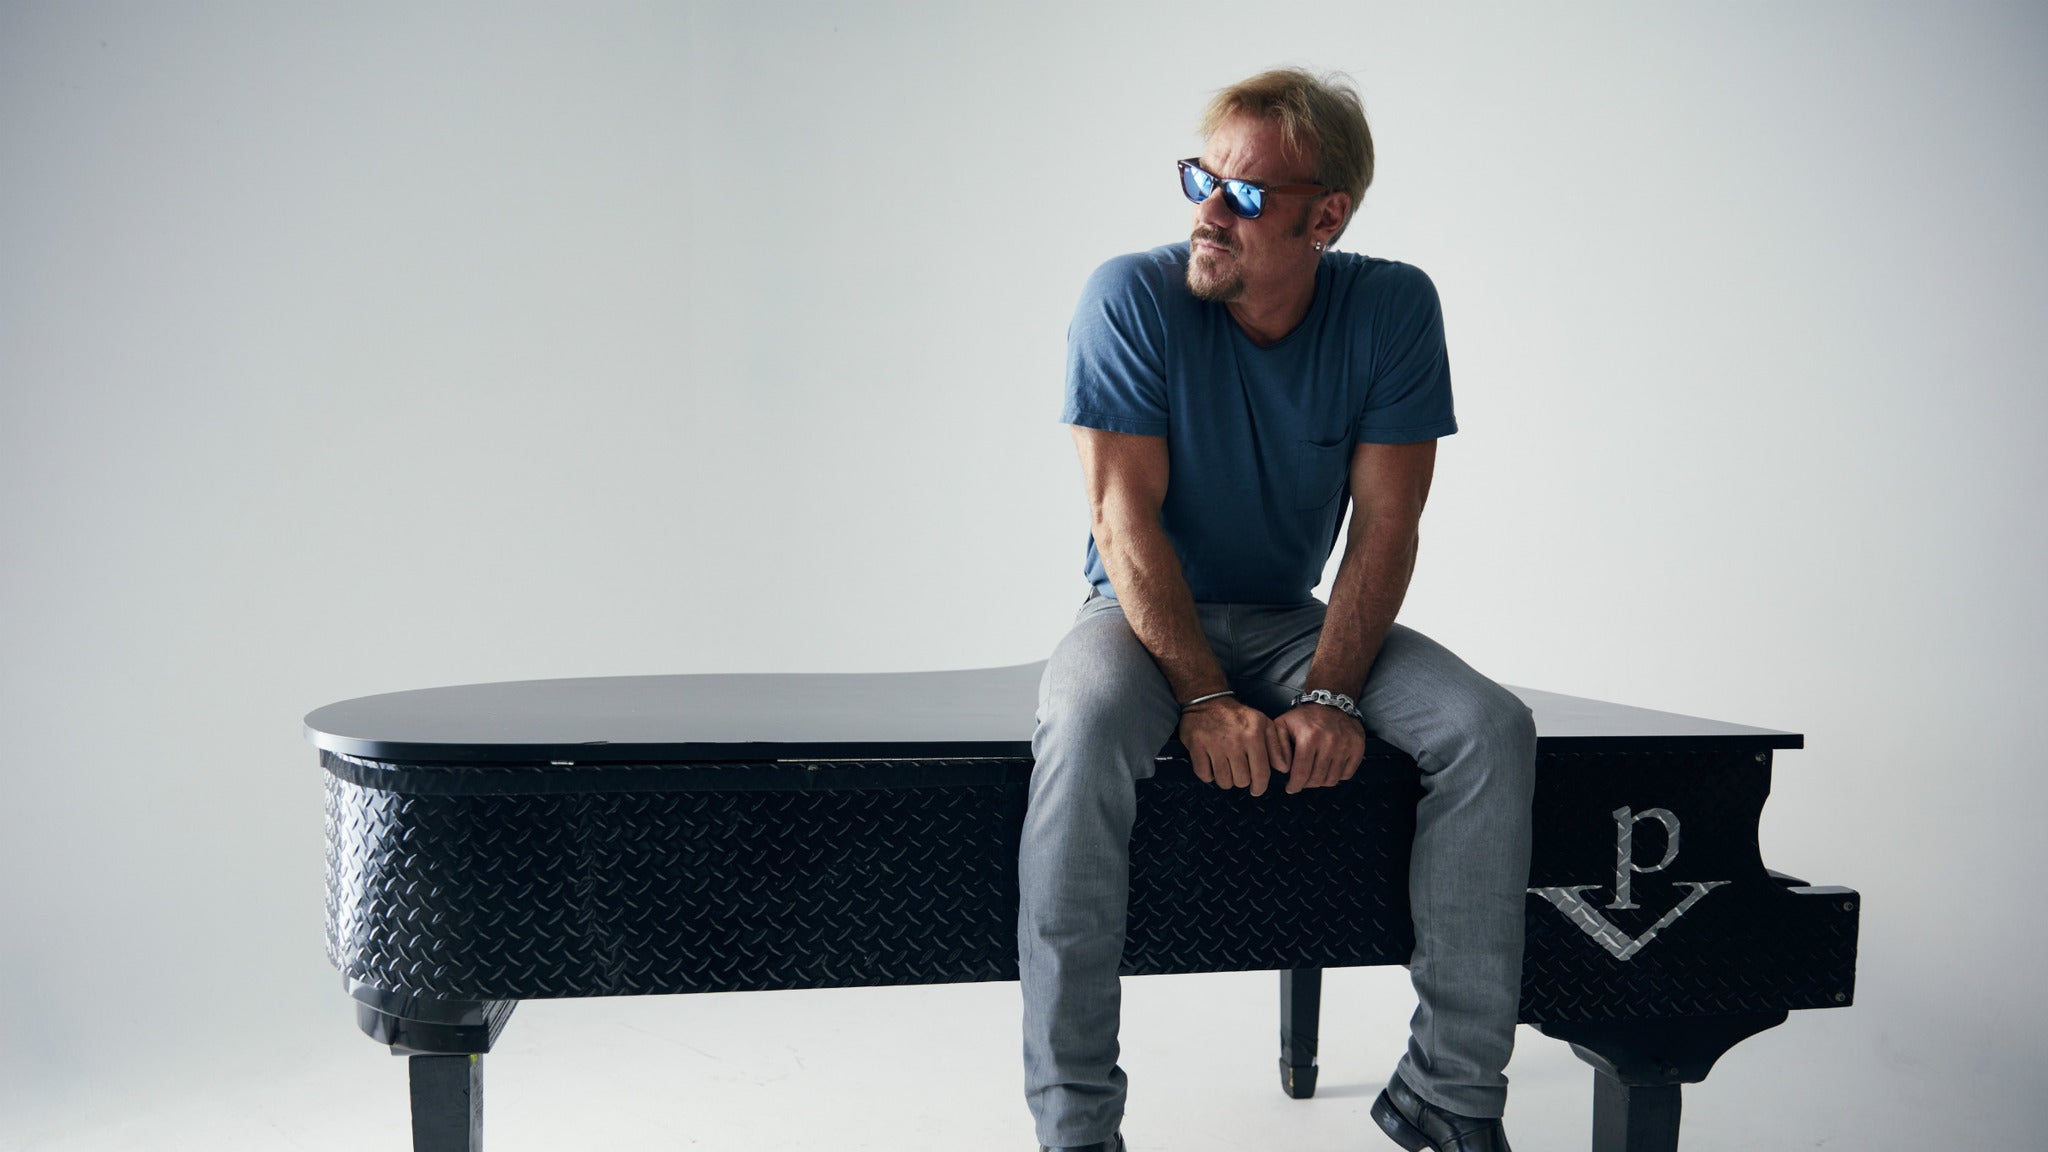 Phil Vassar & Lonestar: The Not So Silent Night Tour - Reading, PA 19601